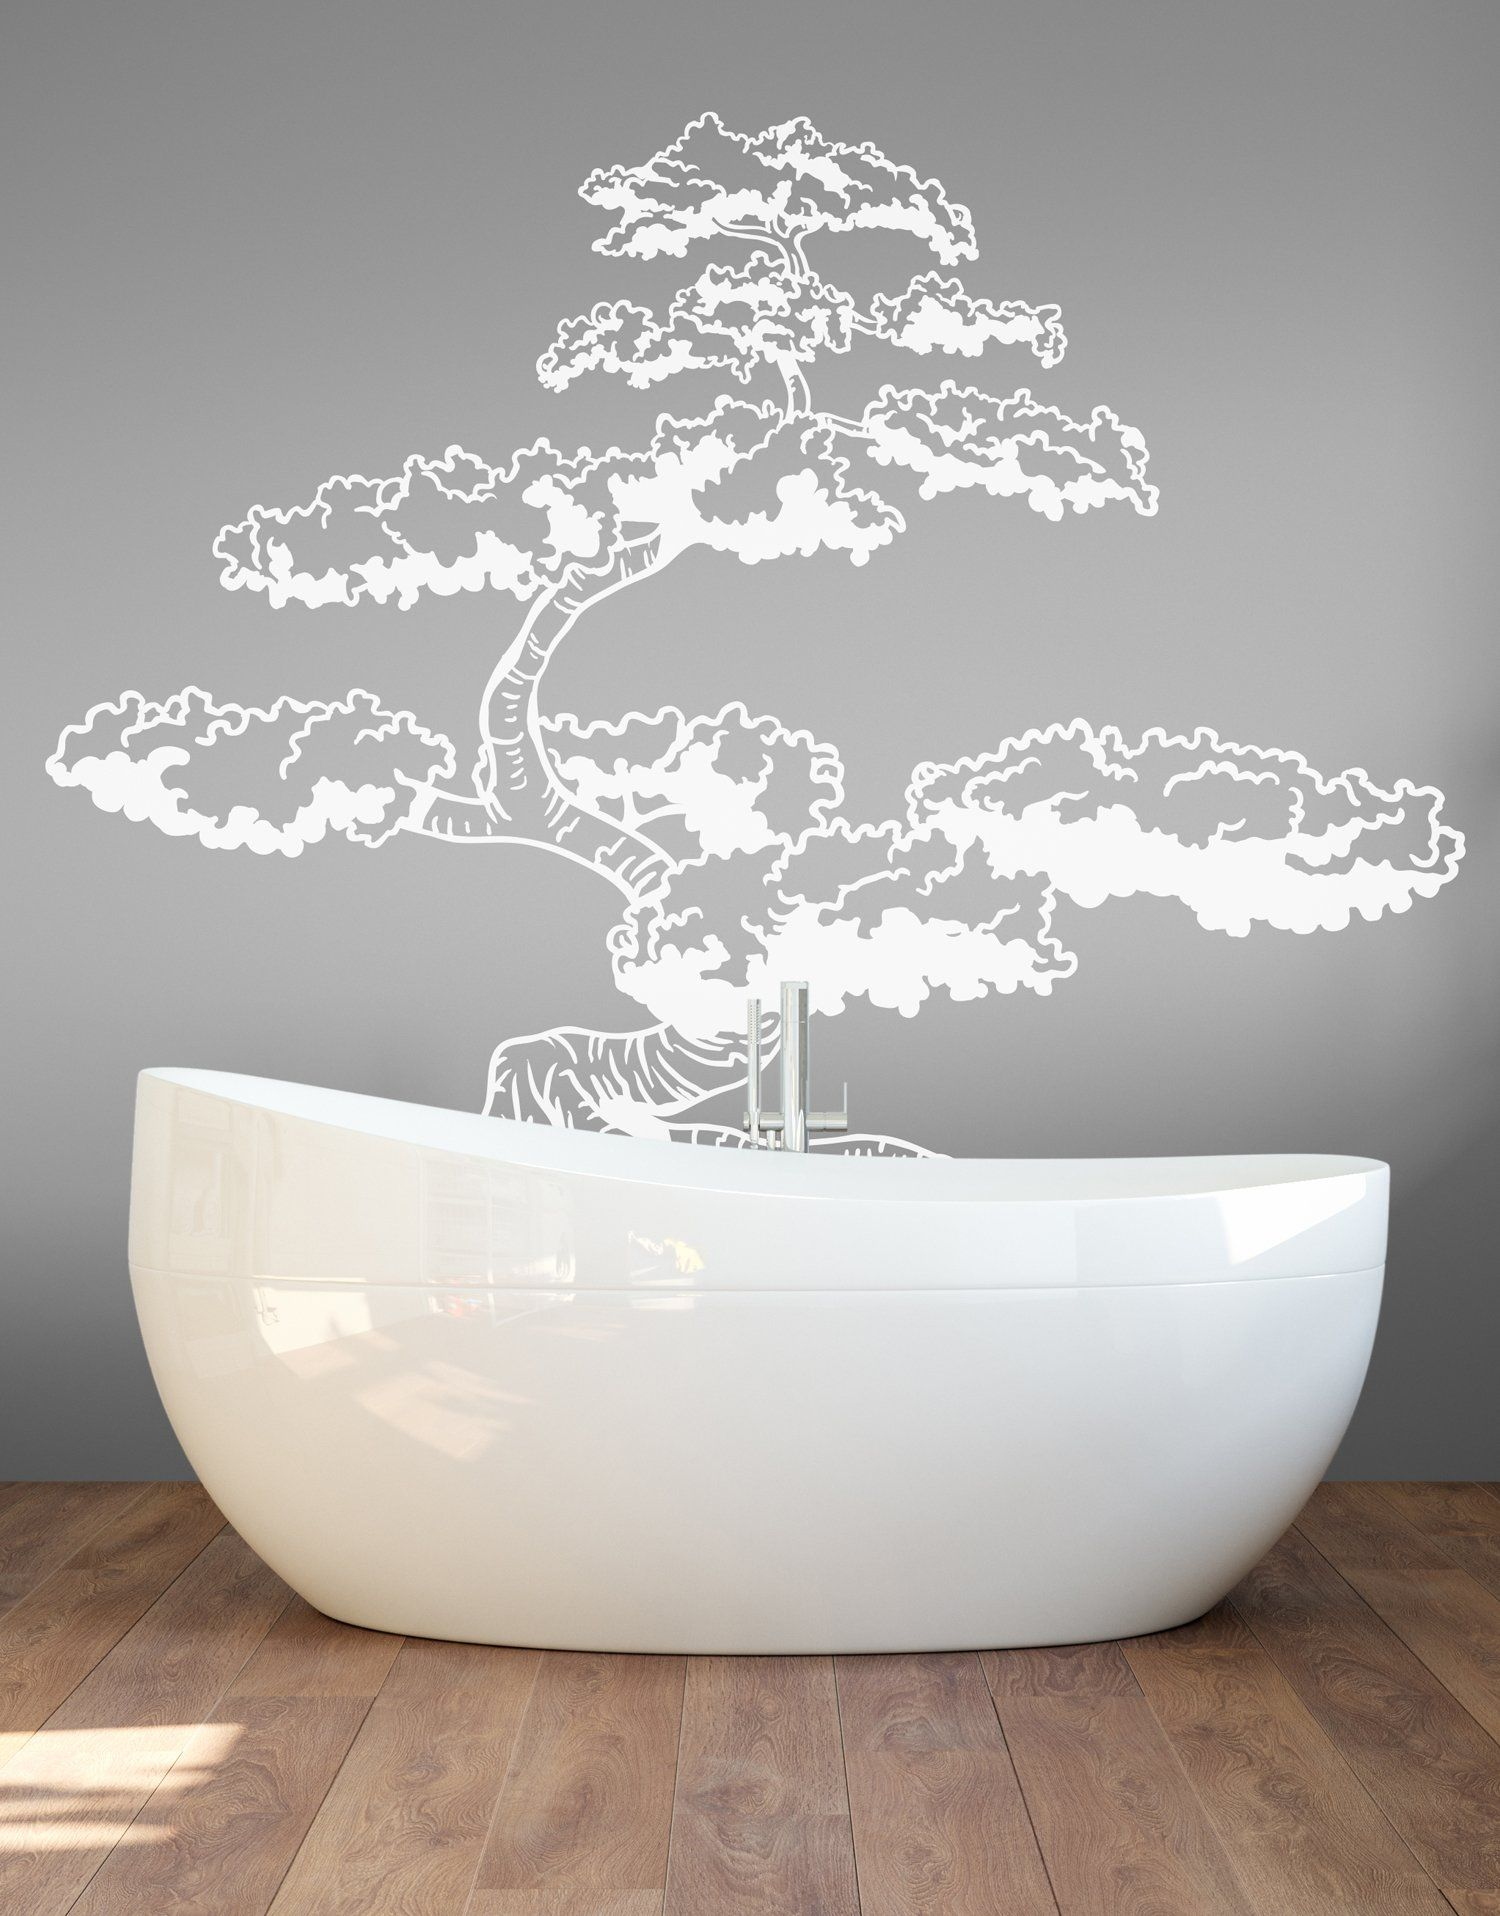 Anese Bonsai Tree Wall Decal Sticker For Your Asian Theme Room